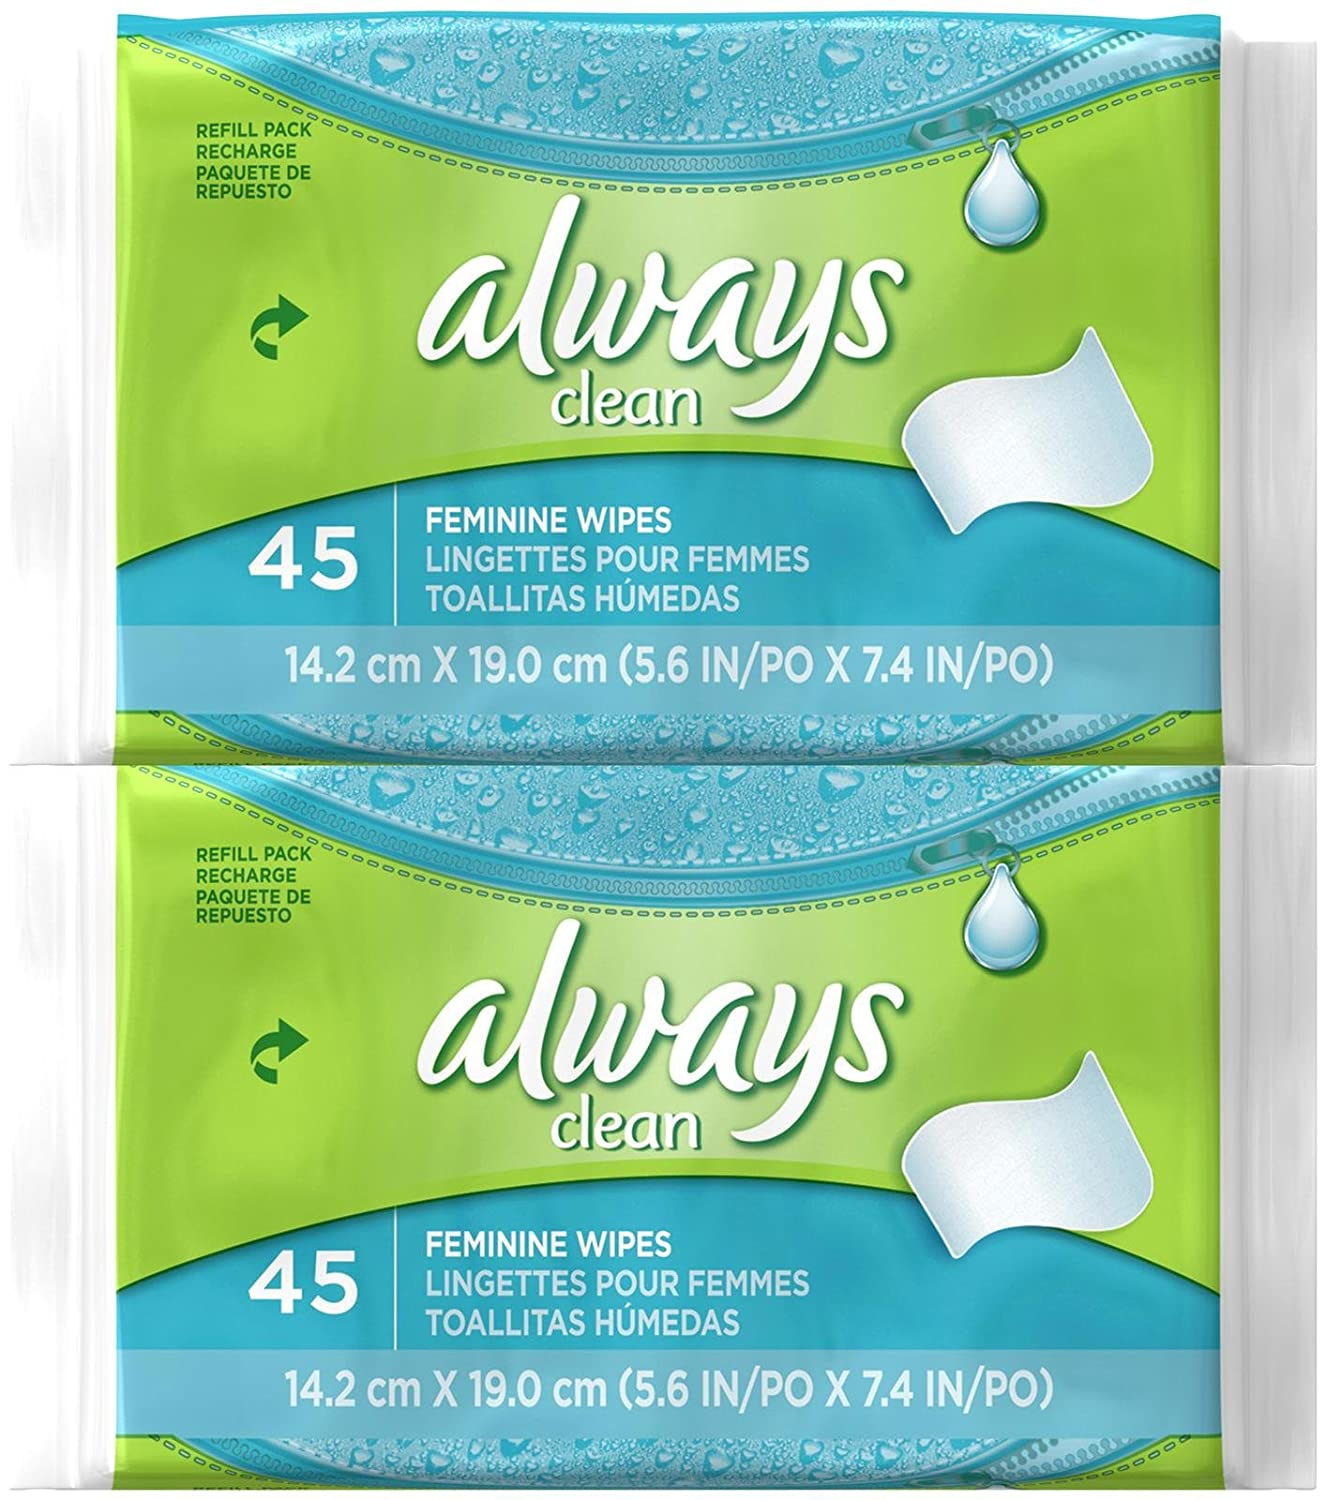 Amazon.com: Always Feminine Wipes Refill Pack - 45 ct - 2 pk: Health & Personal Care